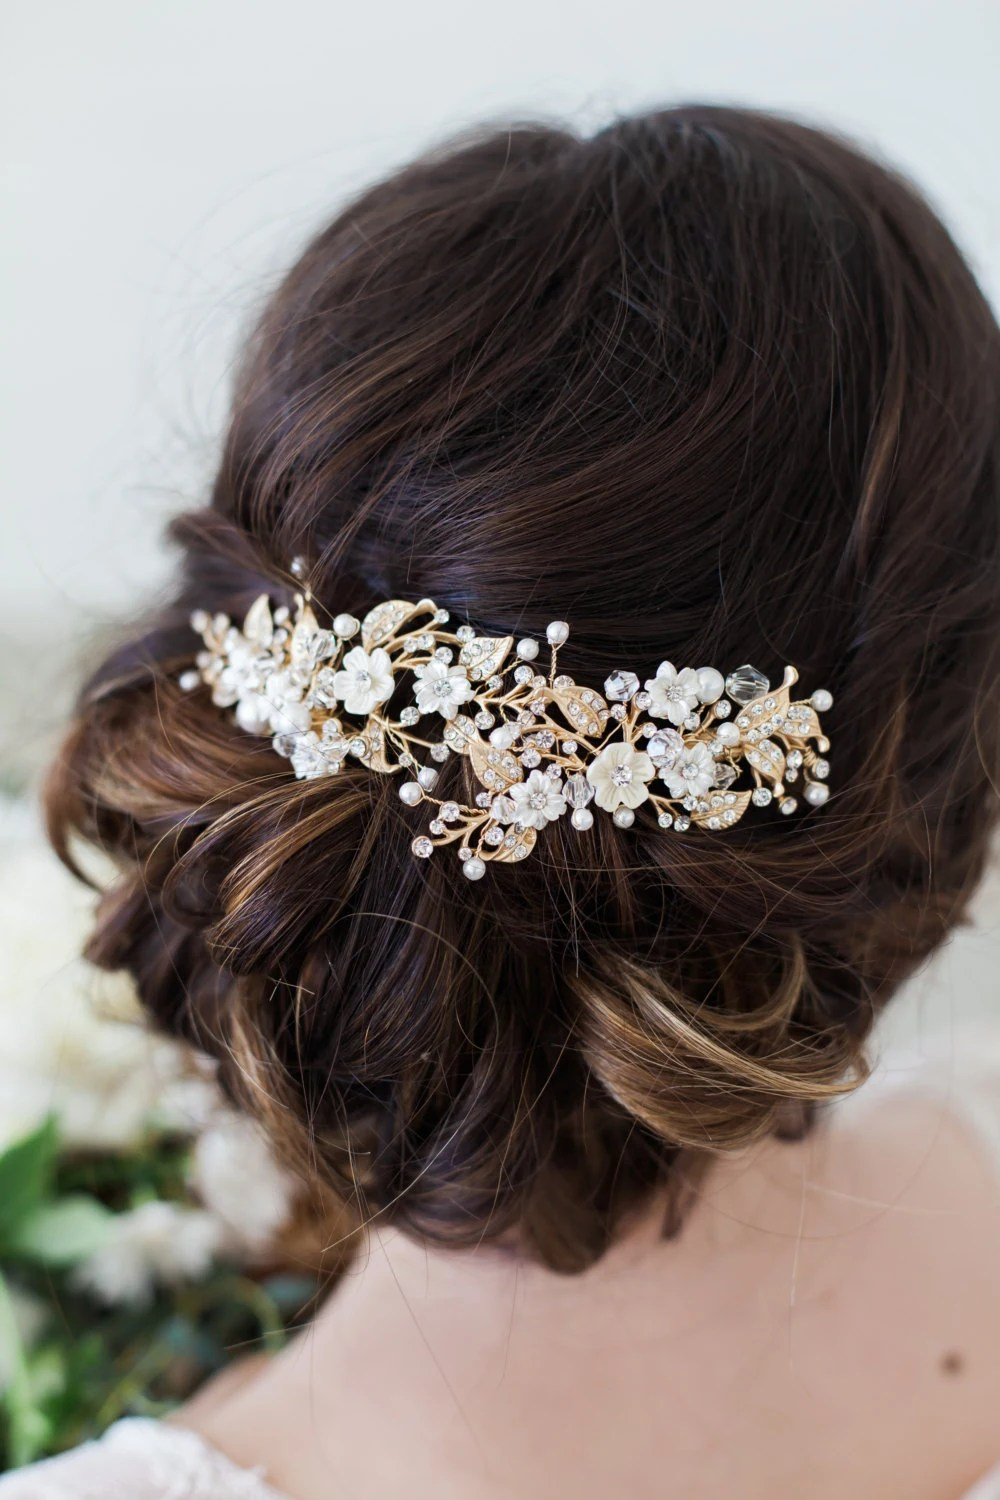 Bridal Headpieces Wedding Hair Accessories Amp By GildedShadows